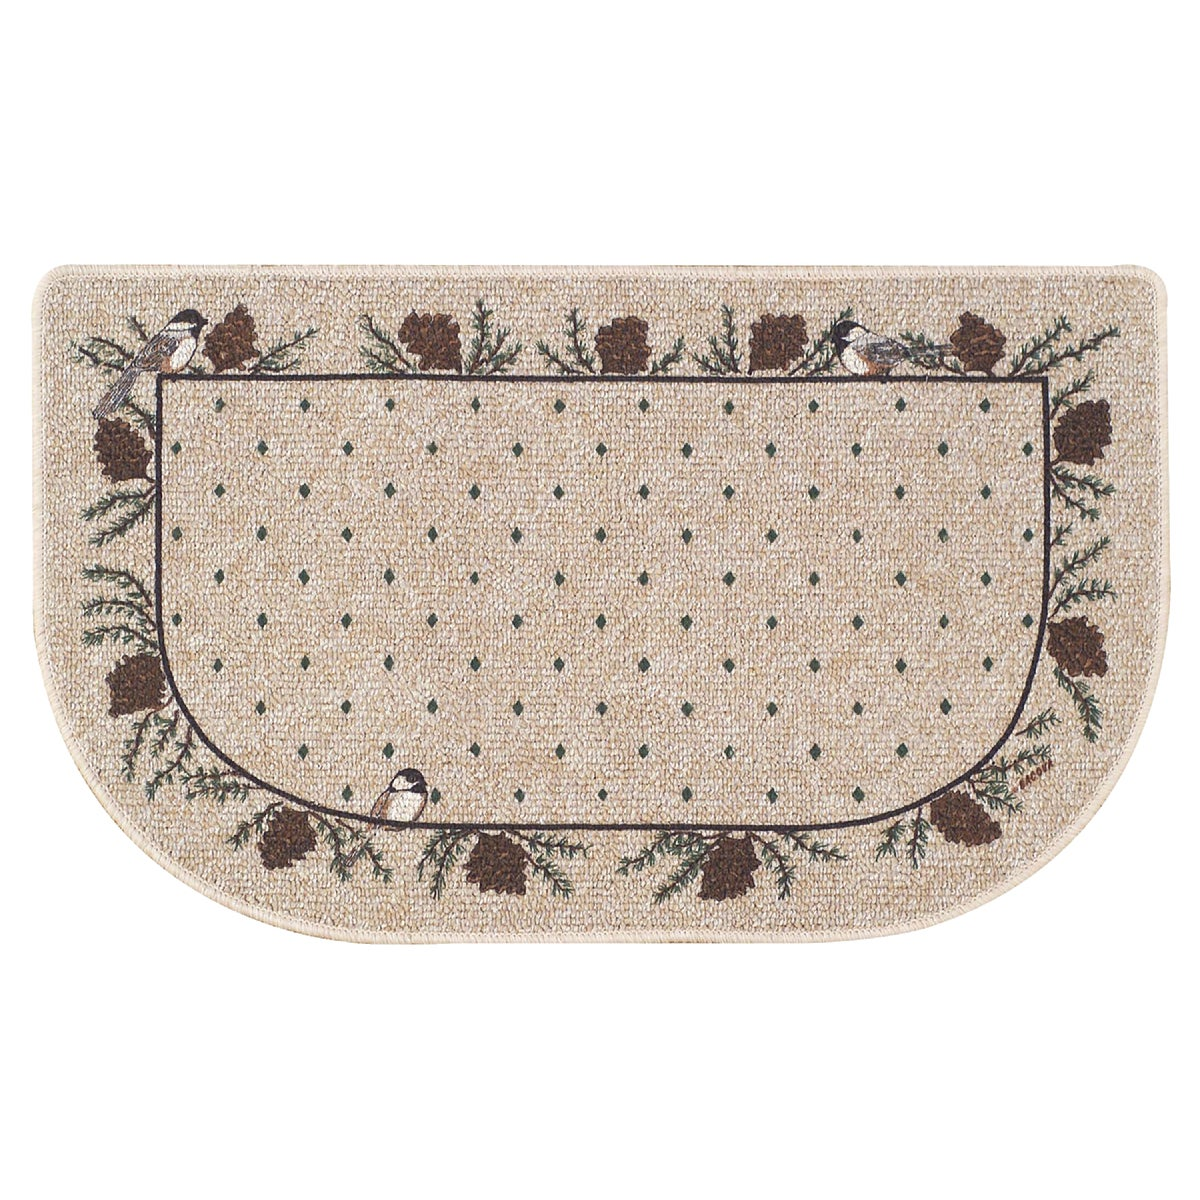 CHICKADEE HEARTH RUG - 01837 by Bacova Guild Ltd